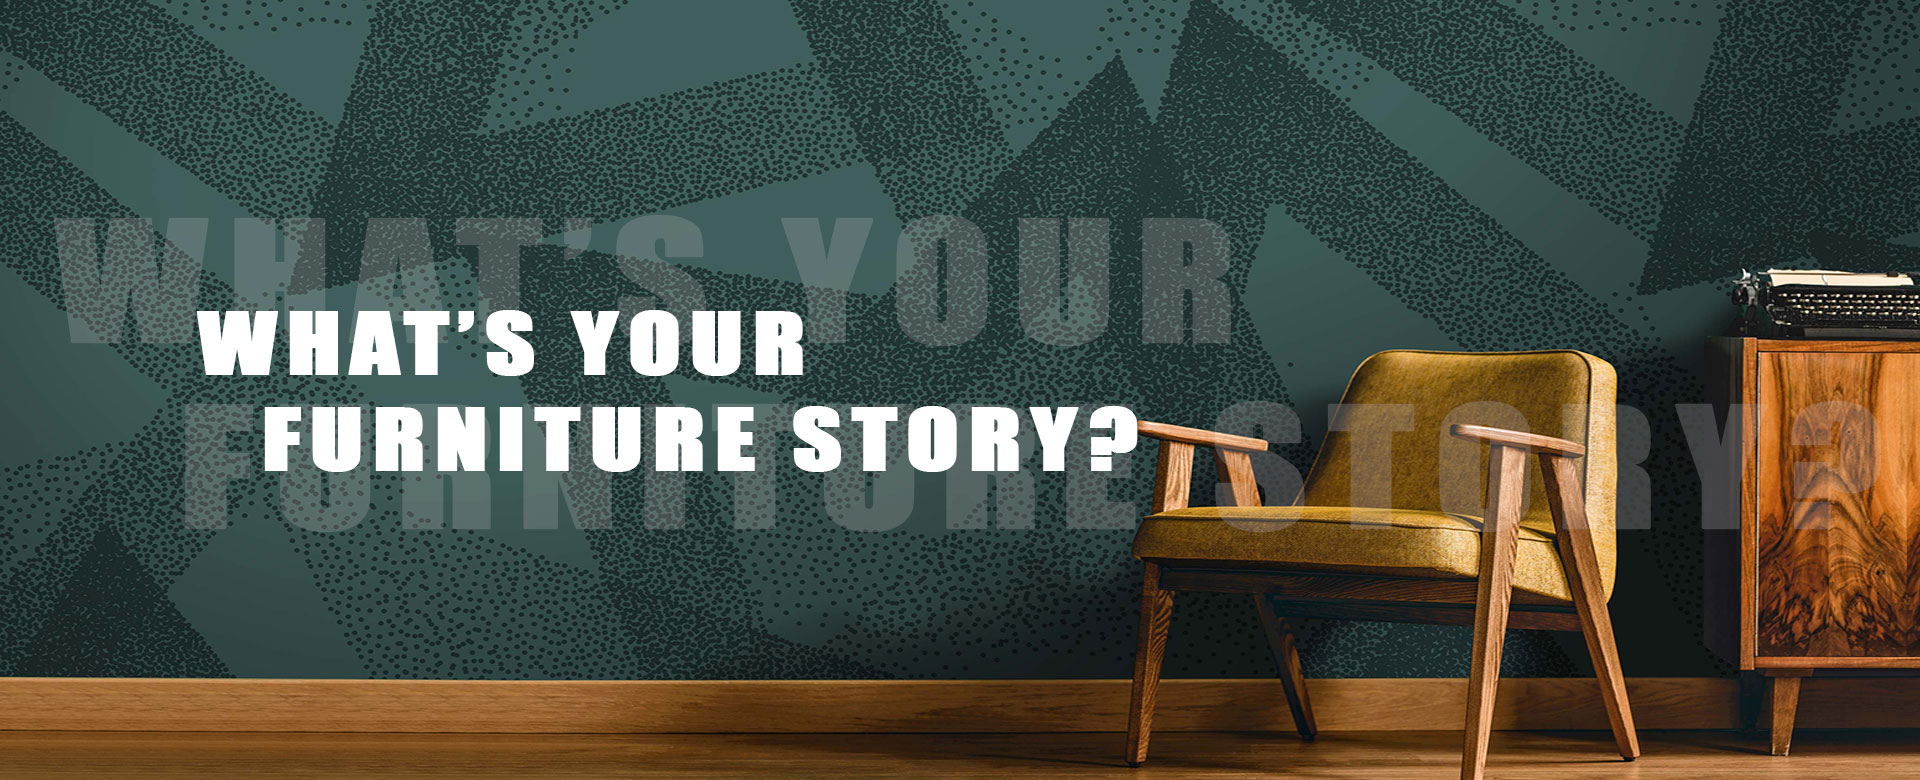 What's Your Furniture Story